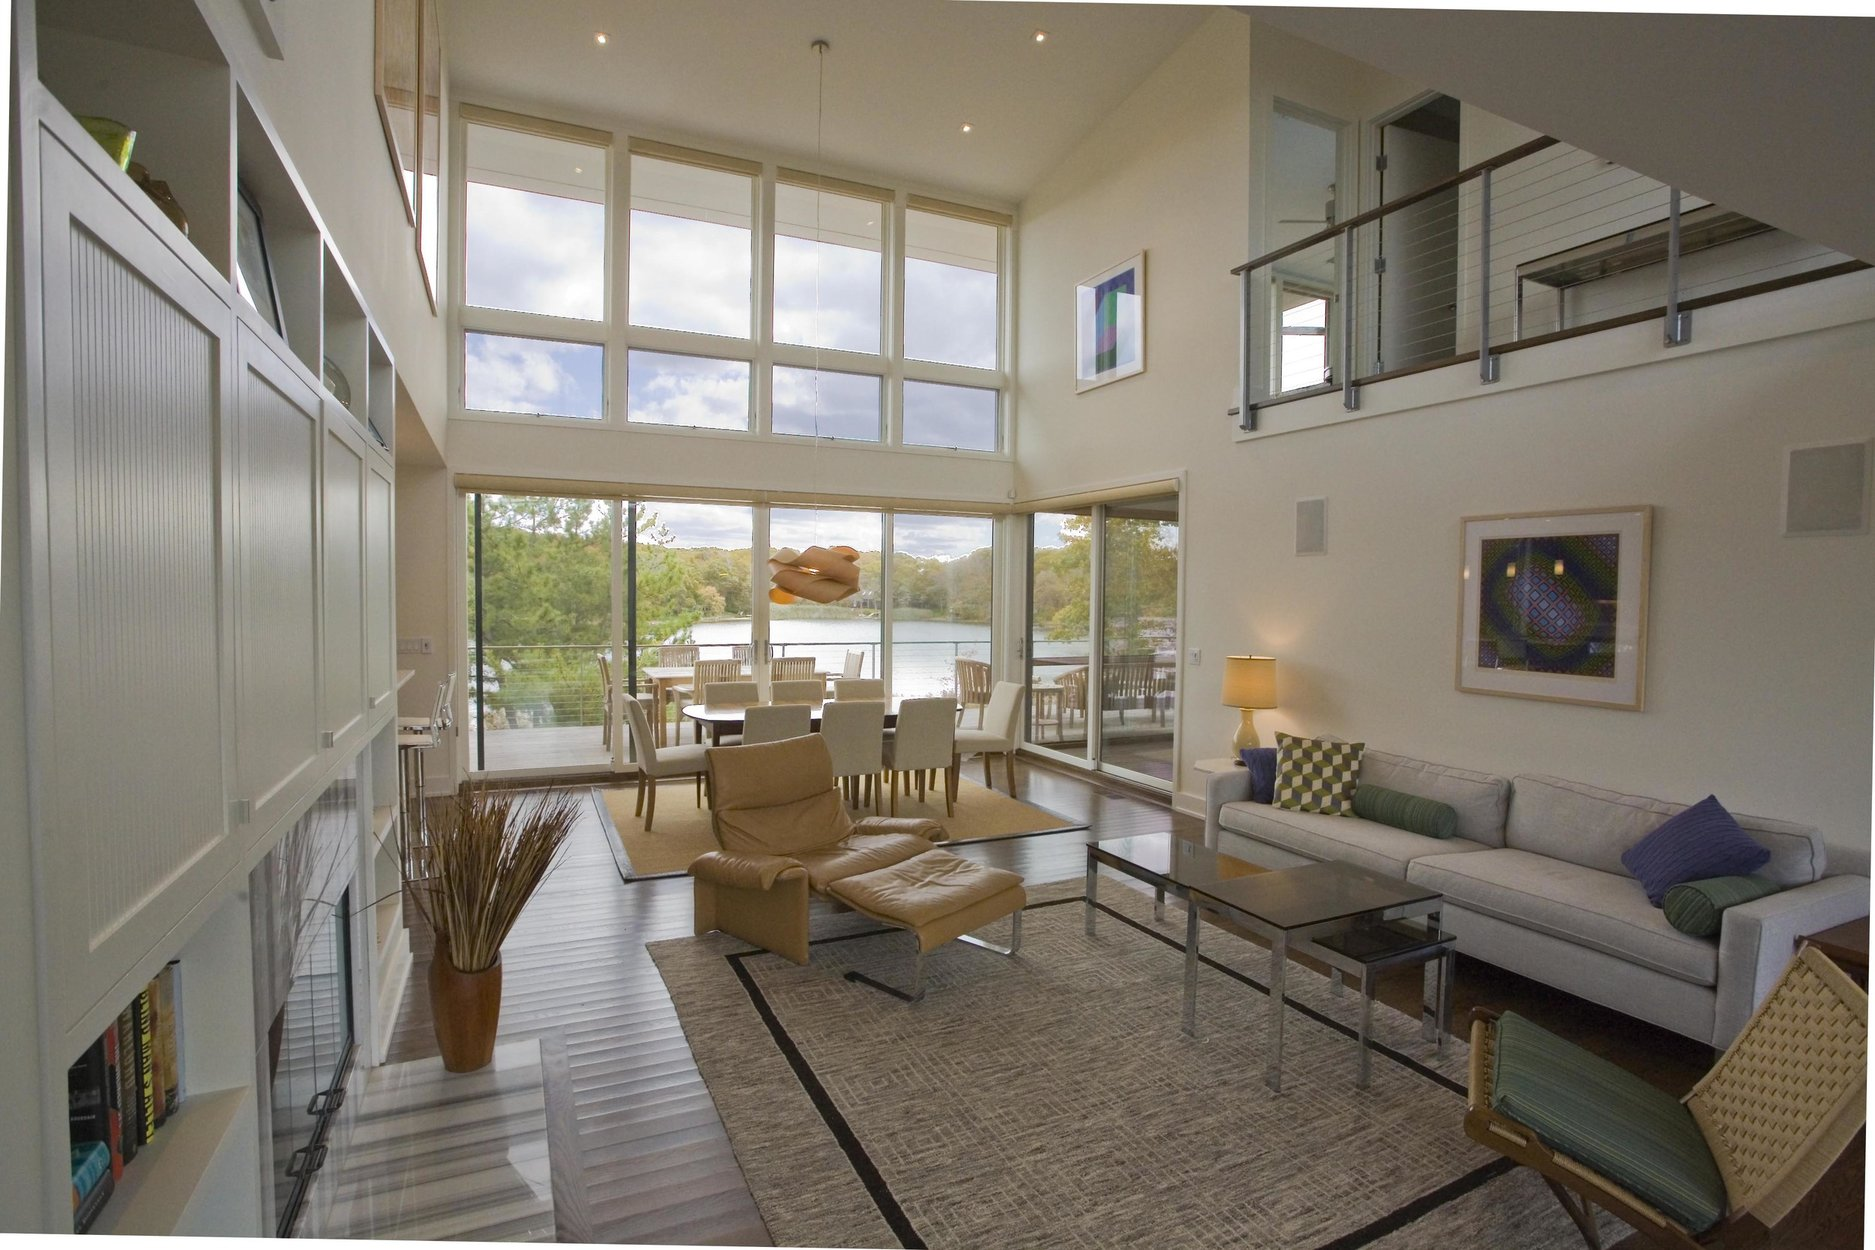 Living room with Ithaca Style cable railing balcony.